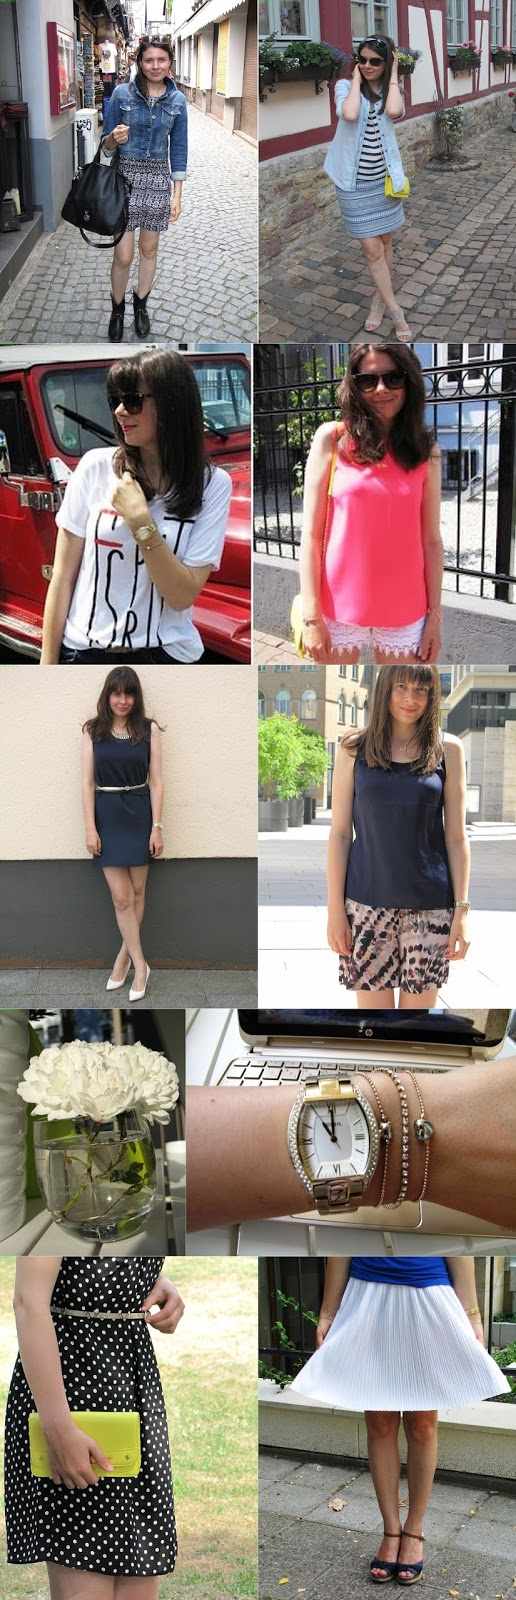 Fashion blogger from Germany, outfits